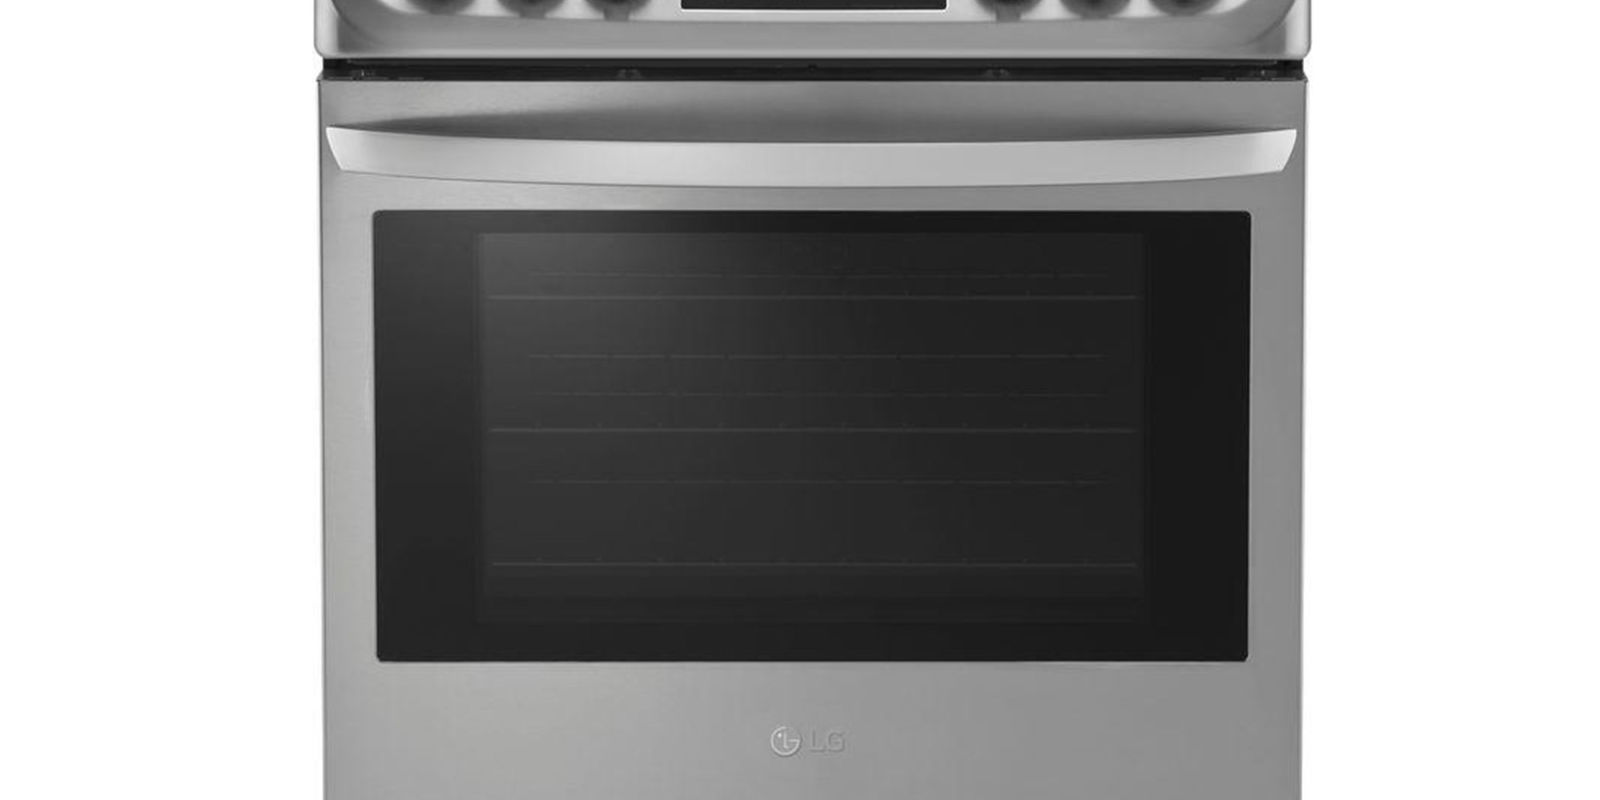 Lg double oven gas range reviews - Lg 6 3 Cu Ft Gas Slide In Range With Probake Convection And Easyclean Lsg4513st Review Price And Features